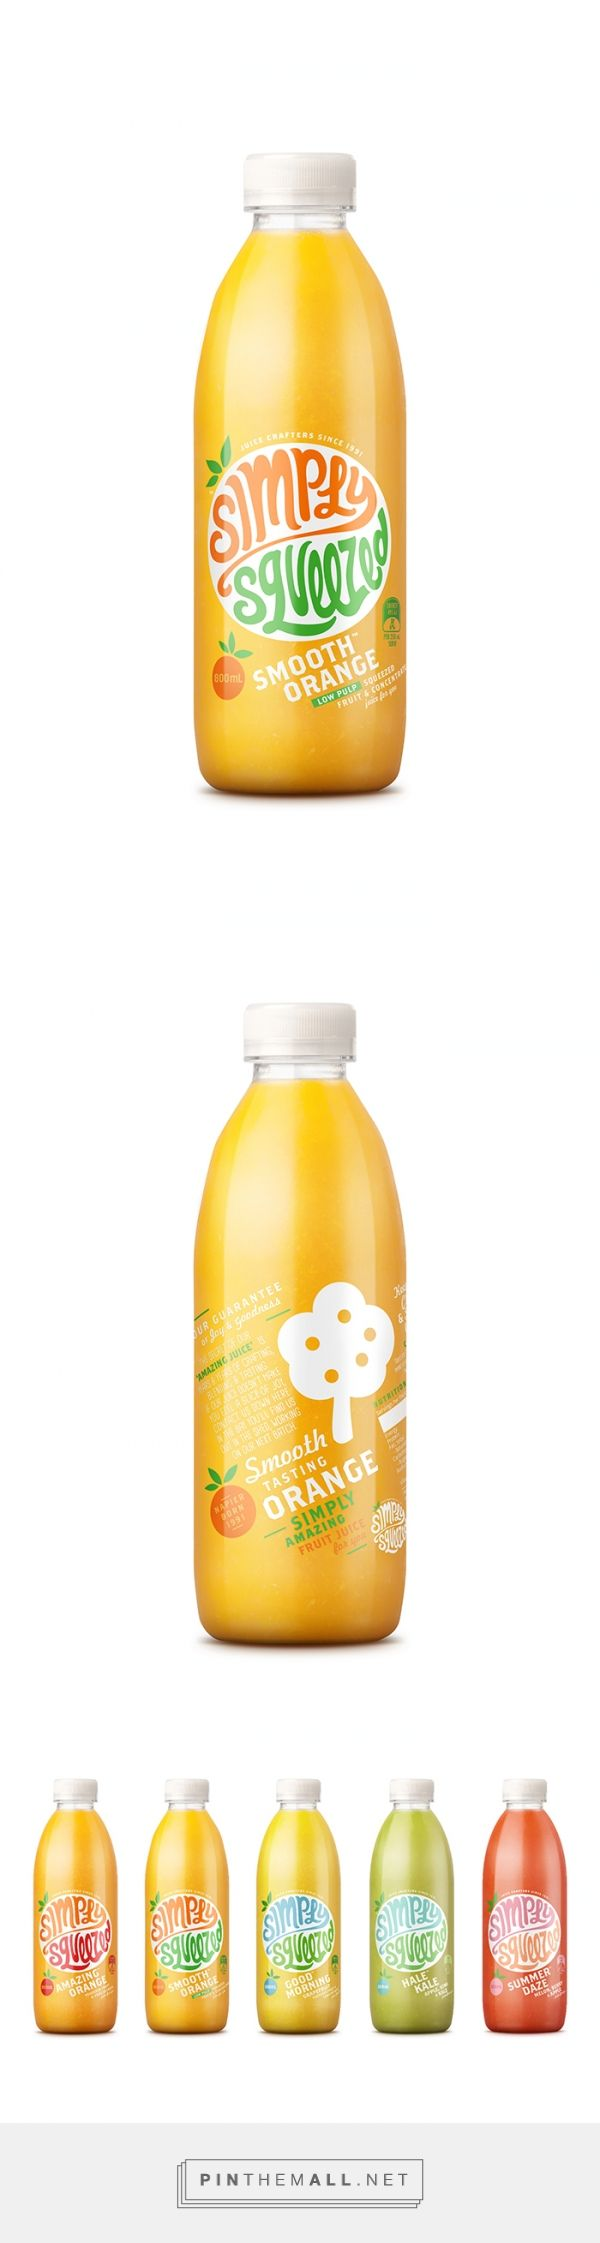 Simply Squeezed Juice Company designed by Dow Design. Pin curated by #SFields99 #packaging #design